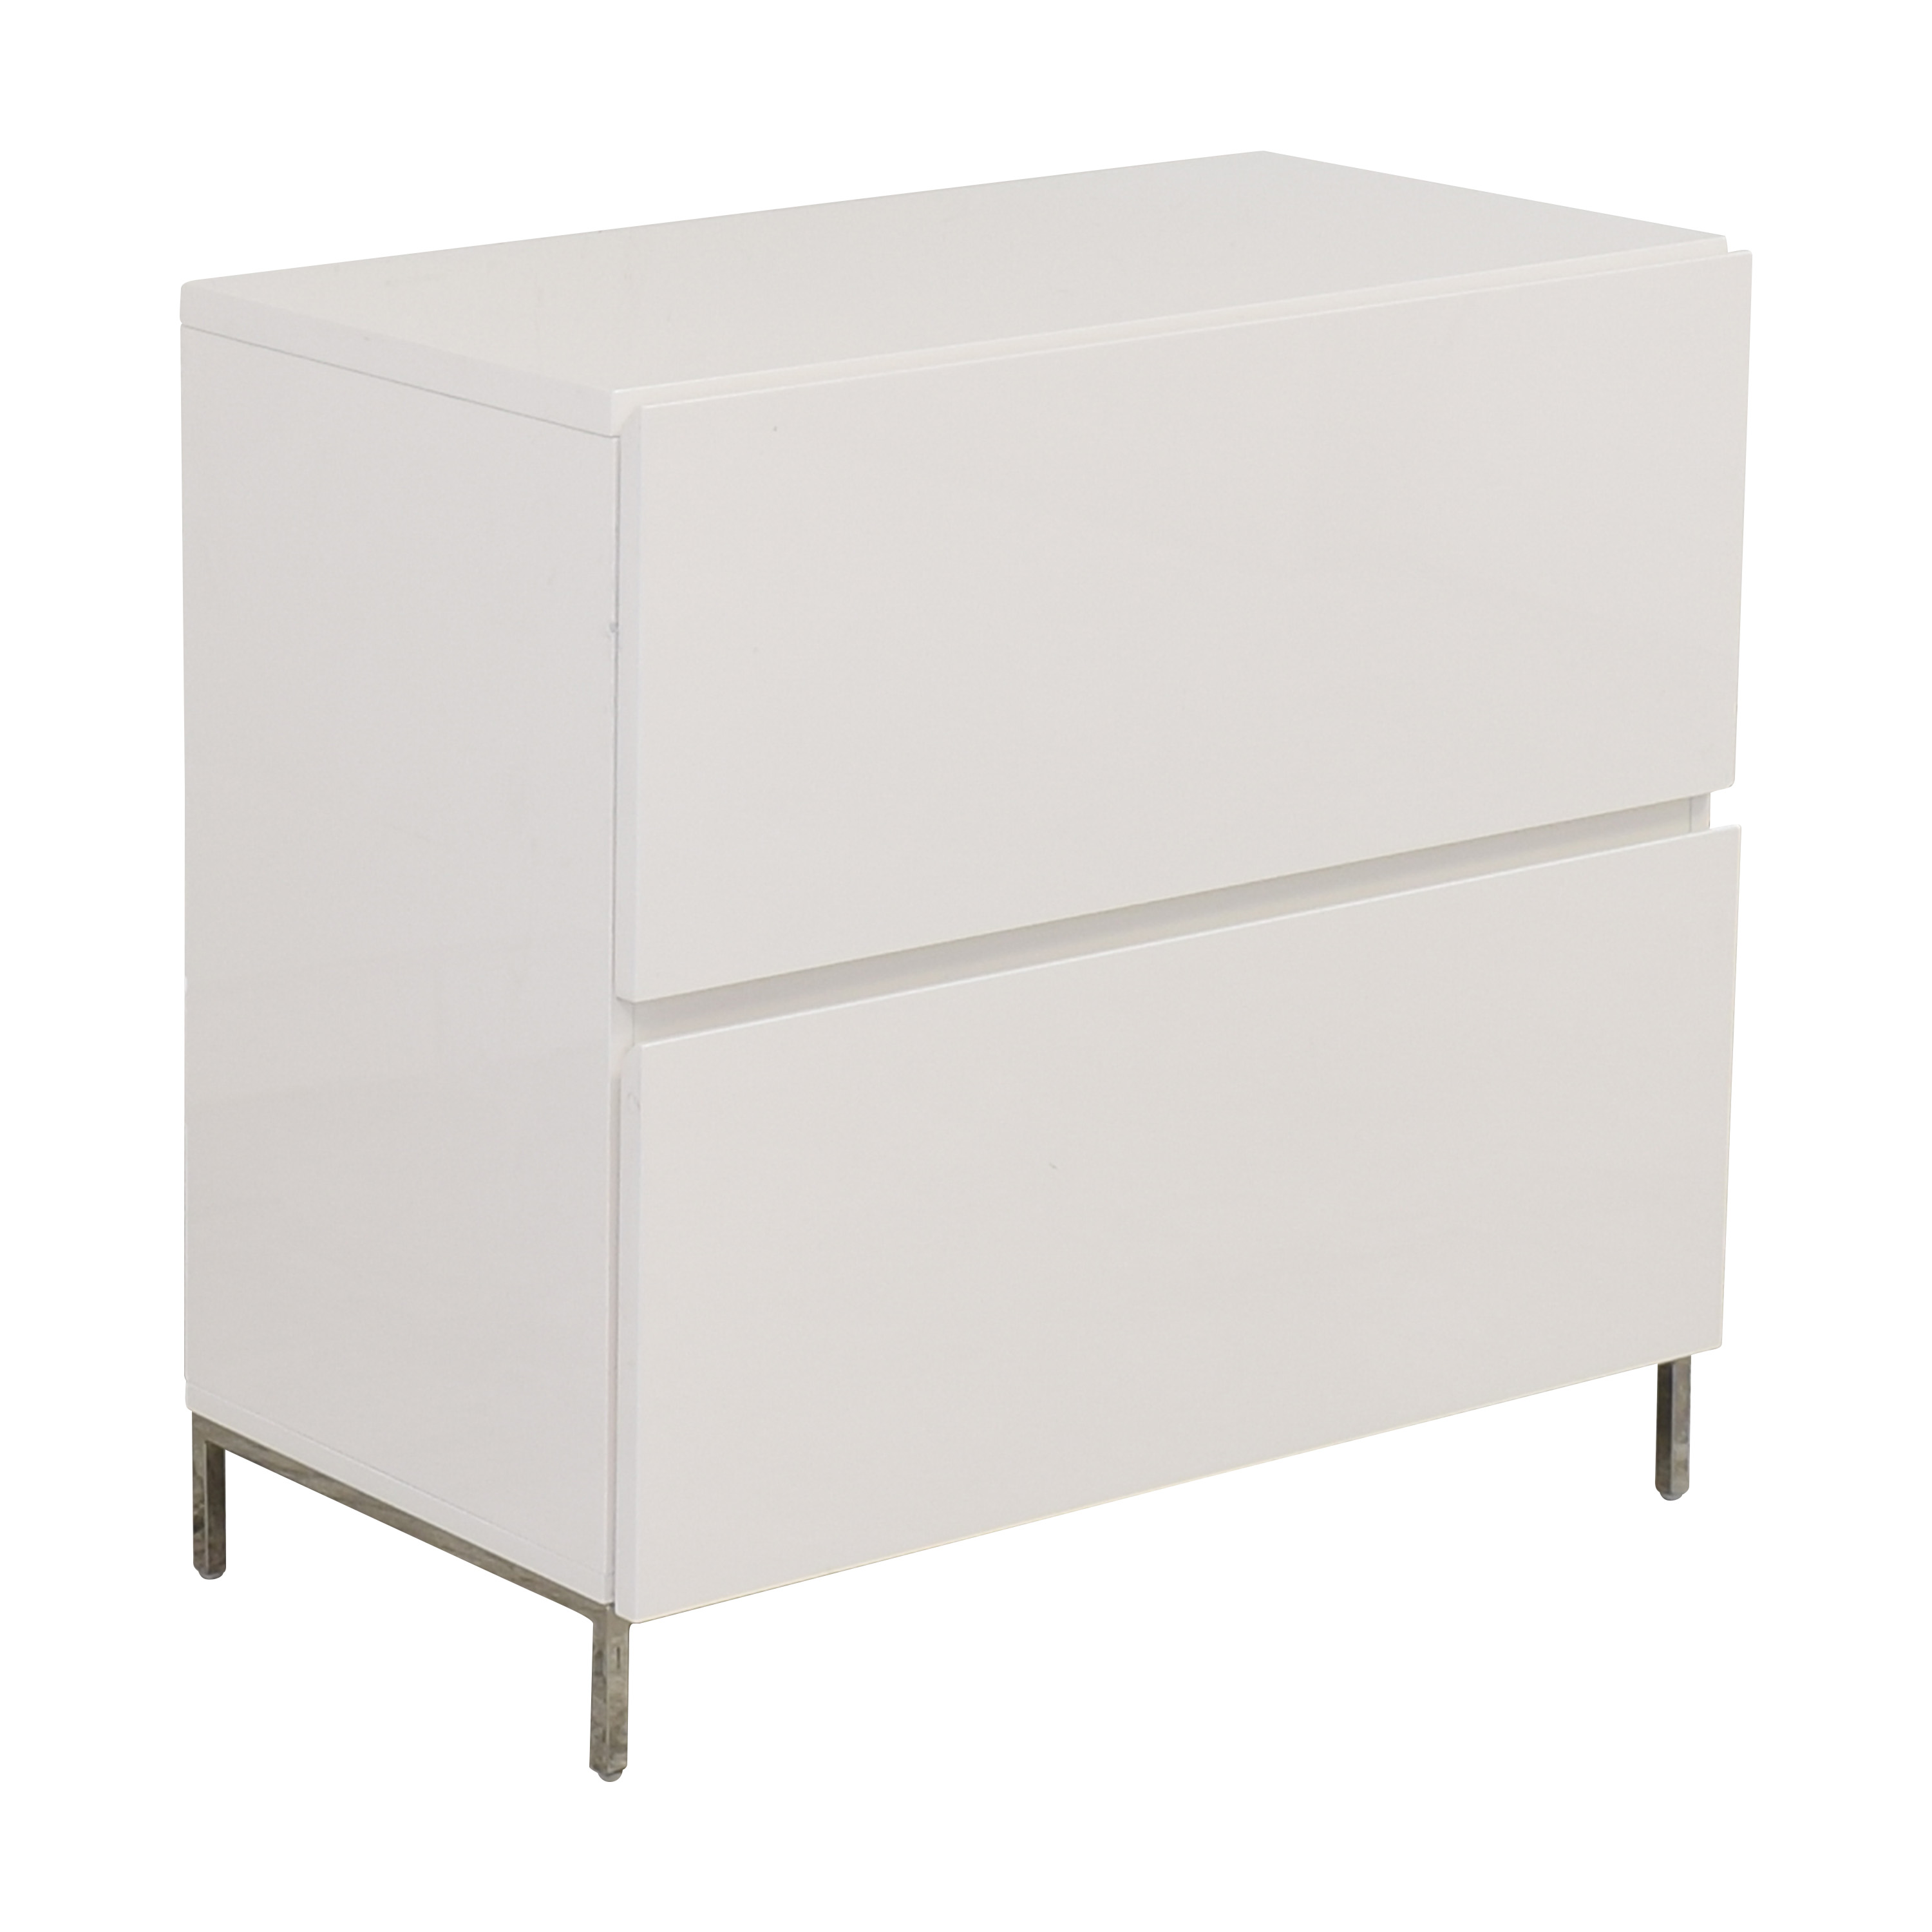 West Elm Lacquer Storage Modular Lateral File Cabinet / Storage